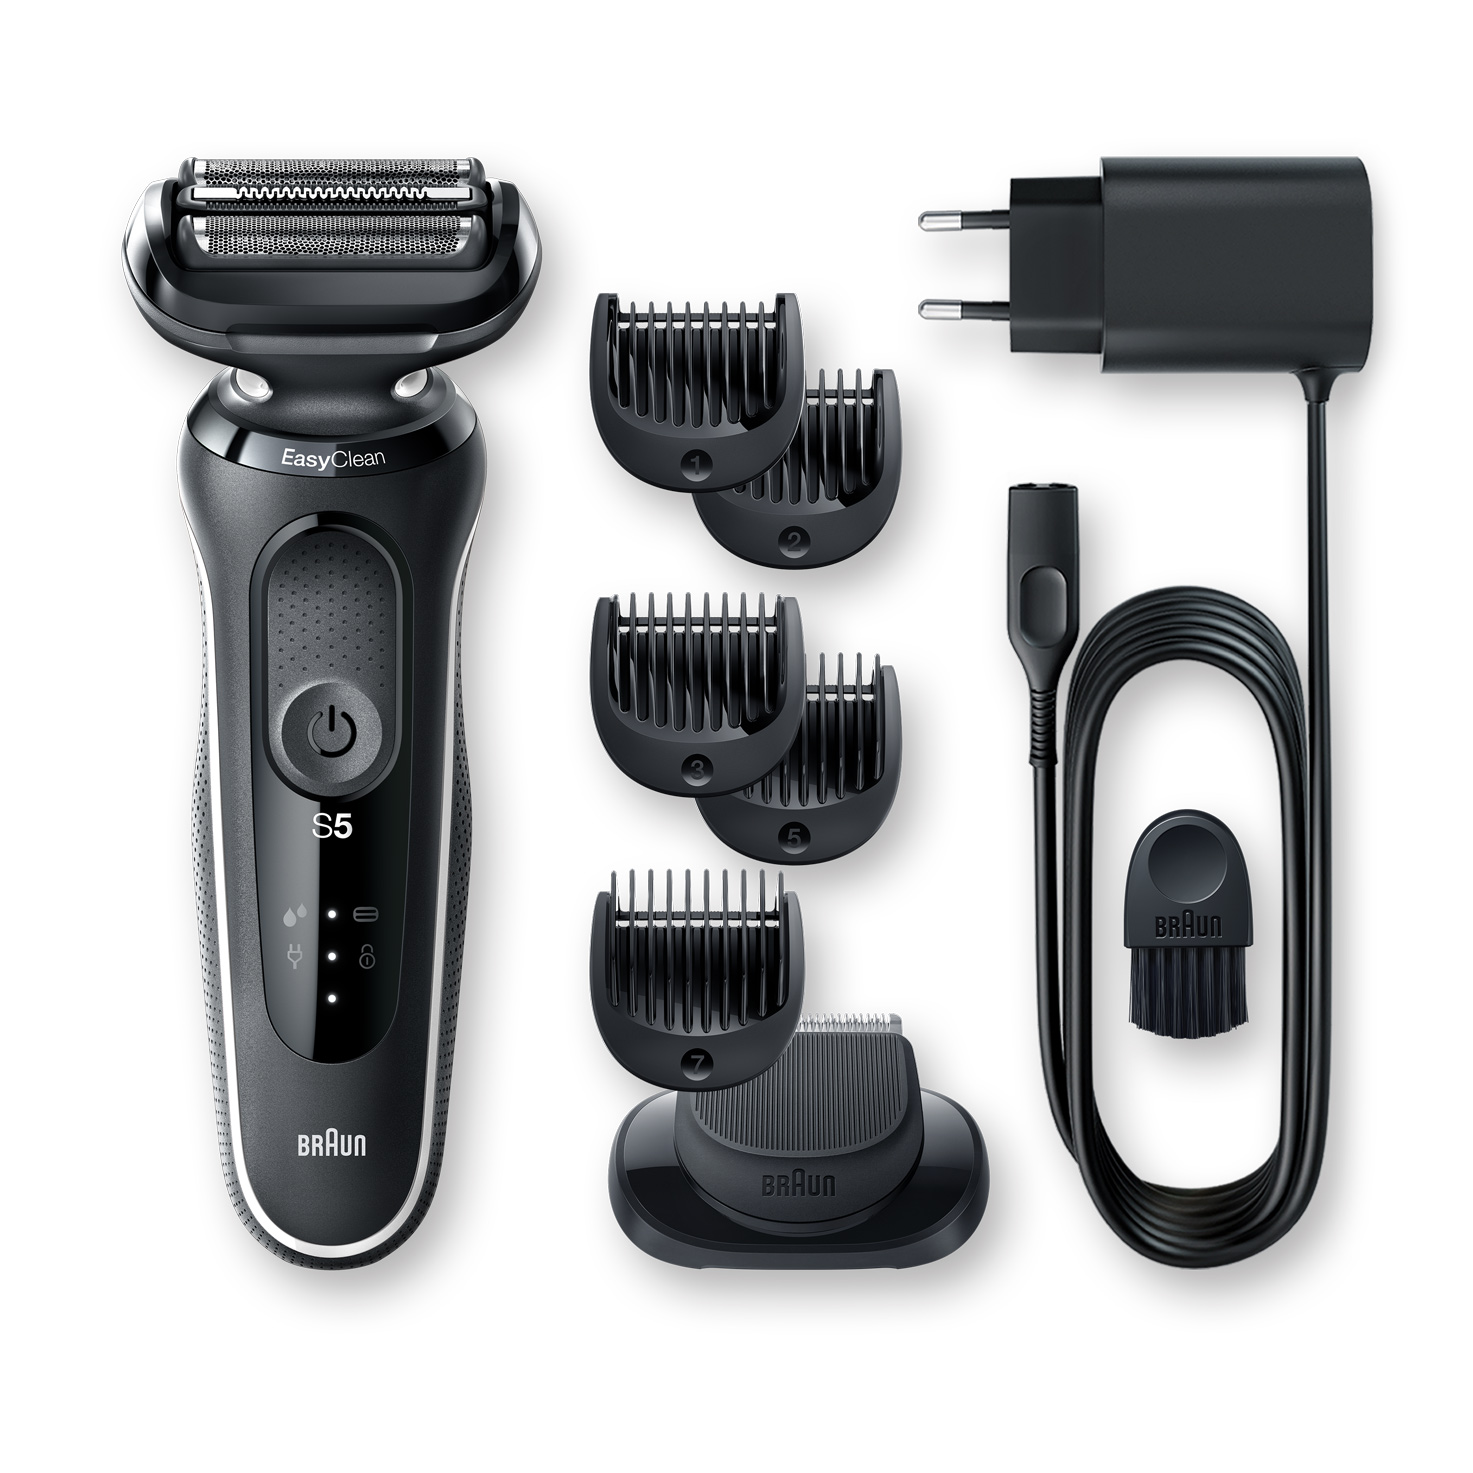 Braun Series 5 50-W1500s Electric Shaver WITB